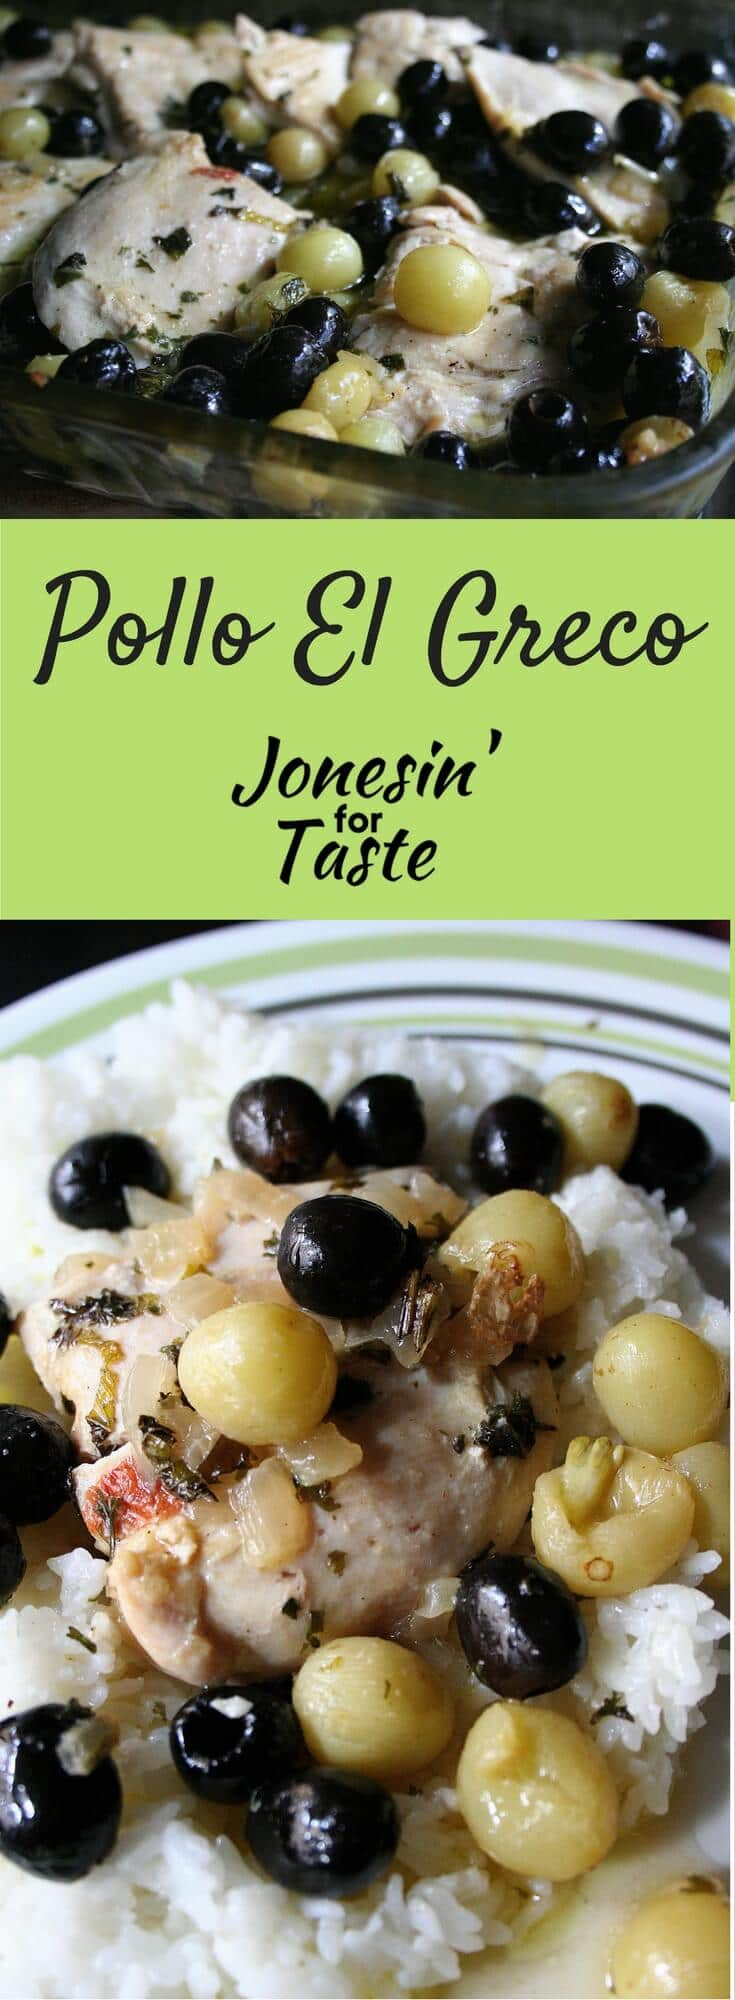 Pollo El Greco is a simple sauce of oil and butter cooked with chicken with olives and grapes and served with rice for a warm and satisfying dish.